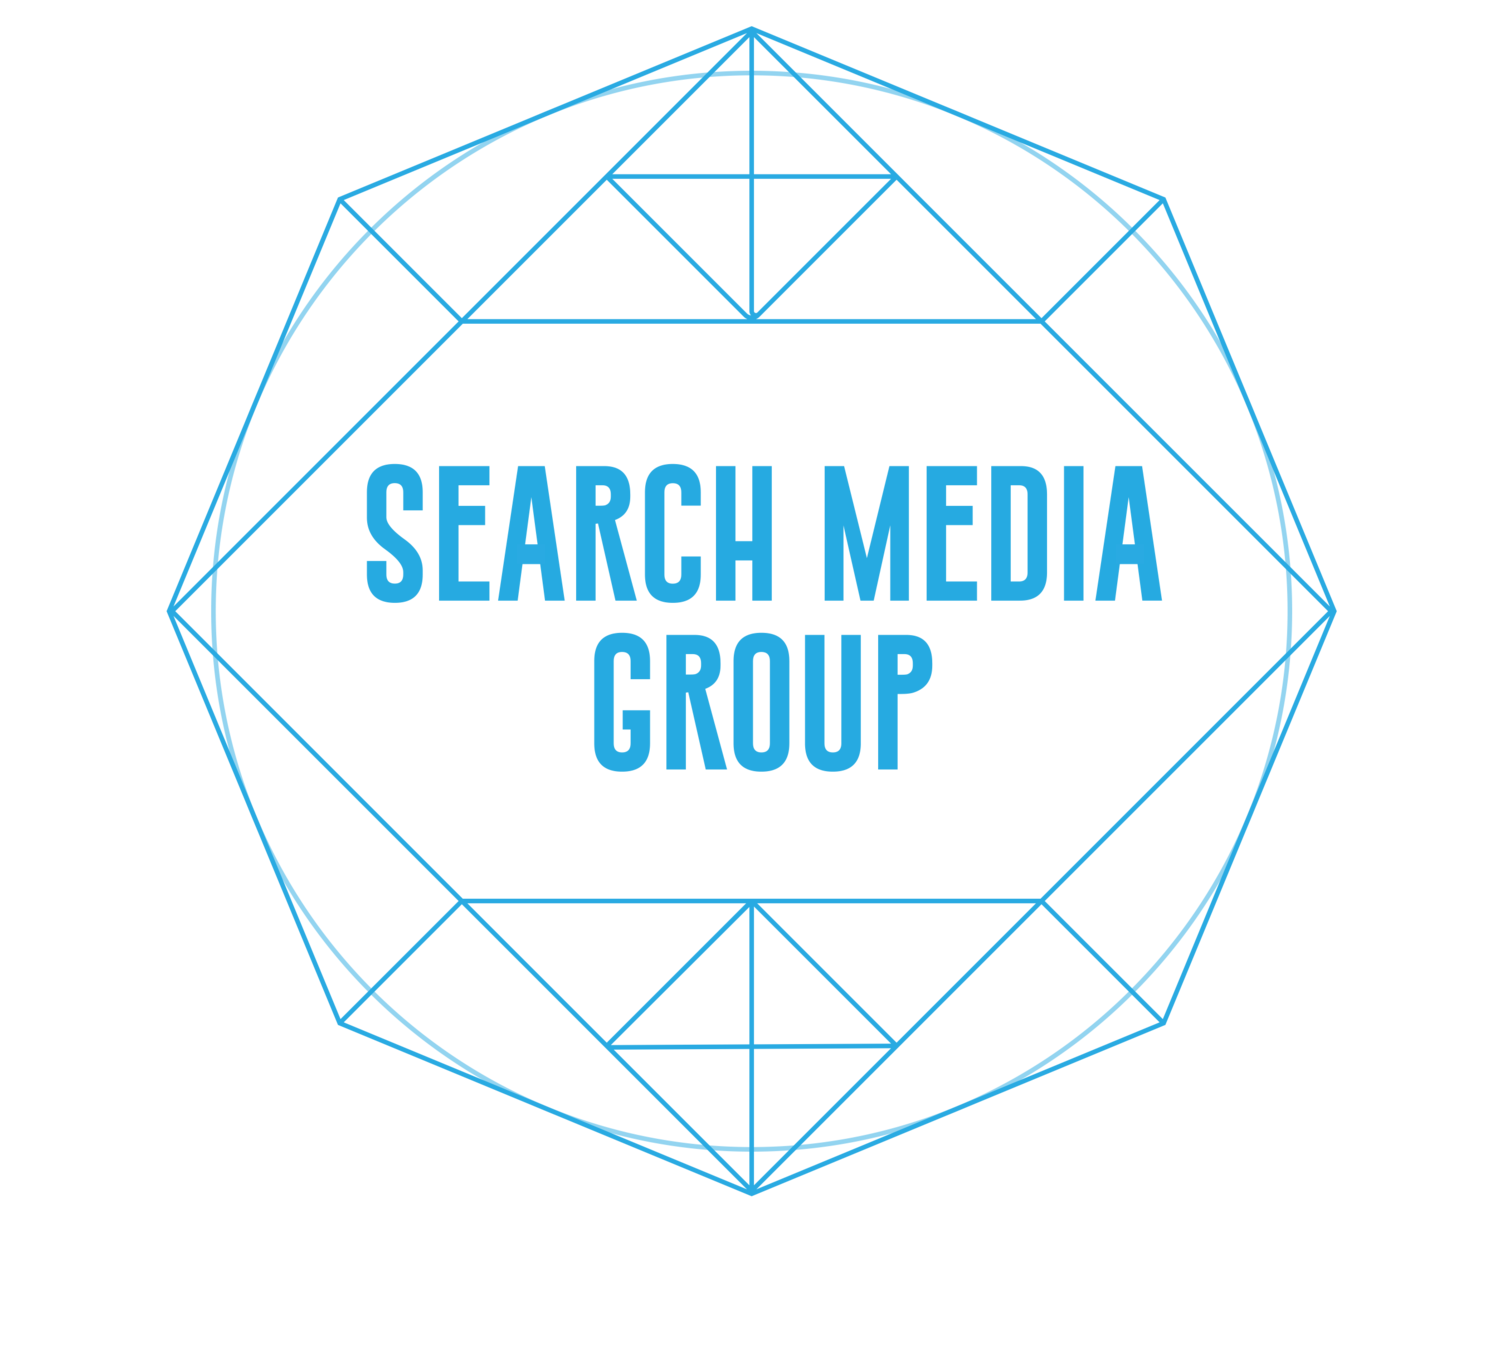 Search Media Group